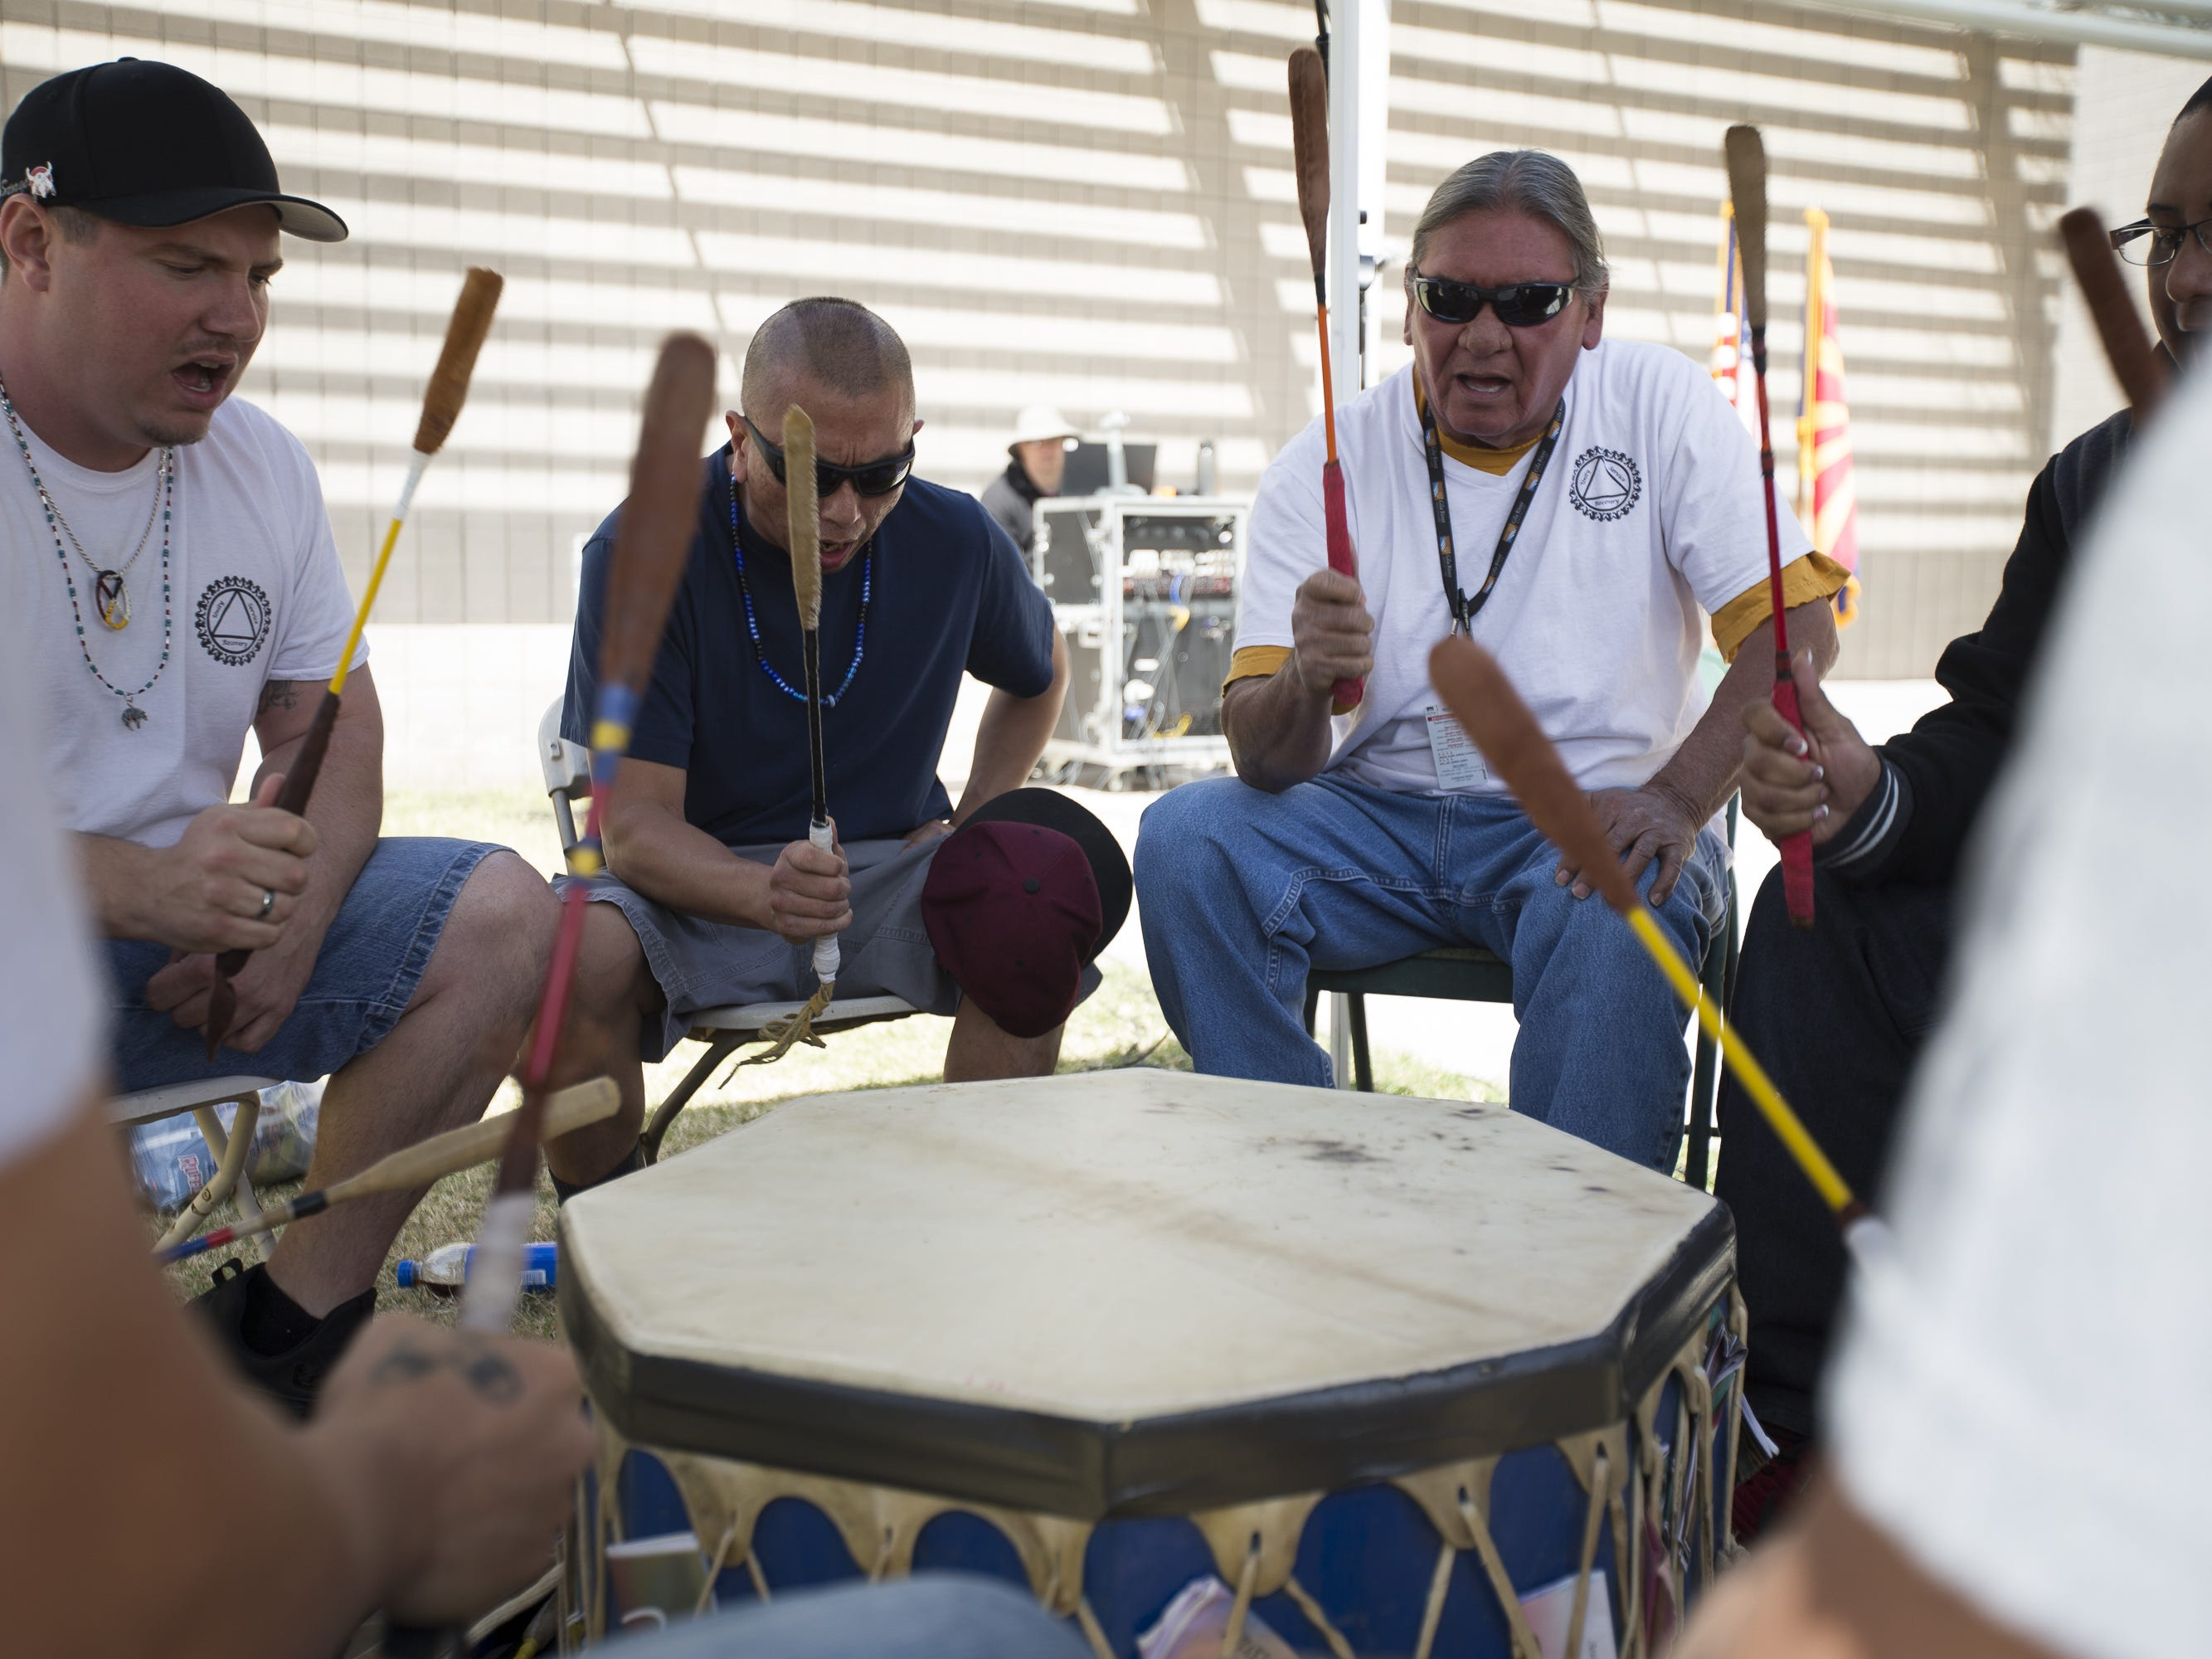 A drum group performs at the Native Two Spirit Powwow at South Mountain Community College in Phoenix, Ariz. on Saturday, March 9, 2019. The powwow was the first of its kind in Arizona, featuring members who identified as two spirit, and members who did not, dancing together.